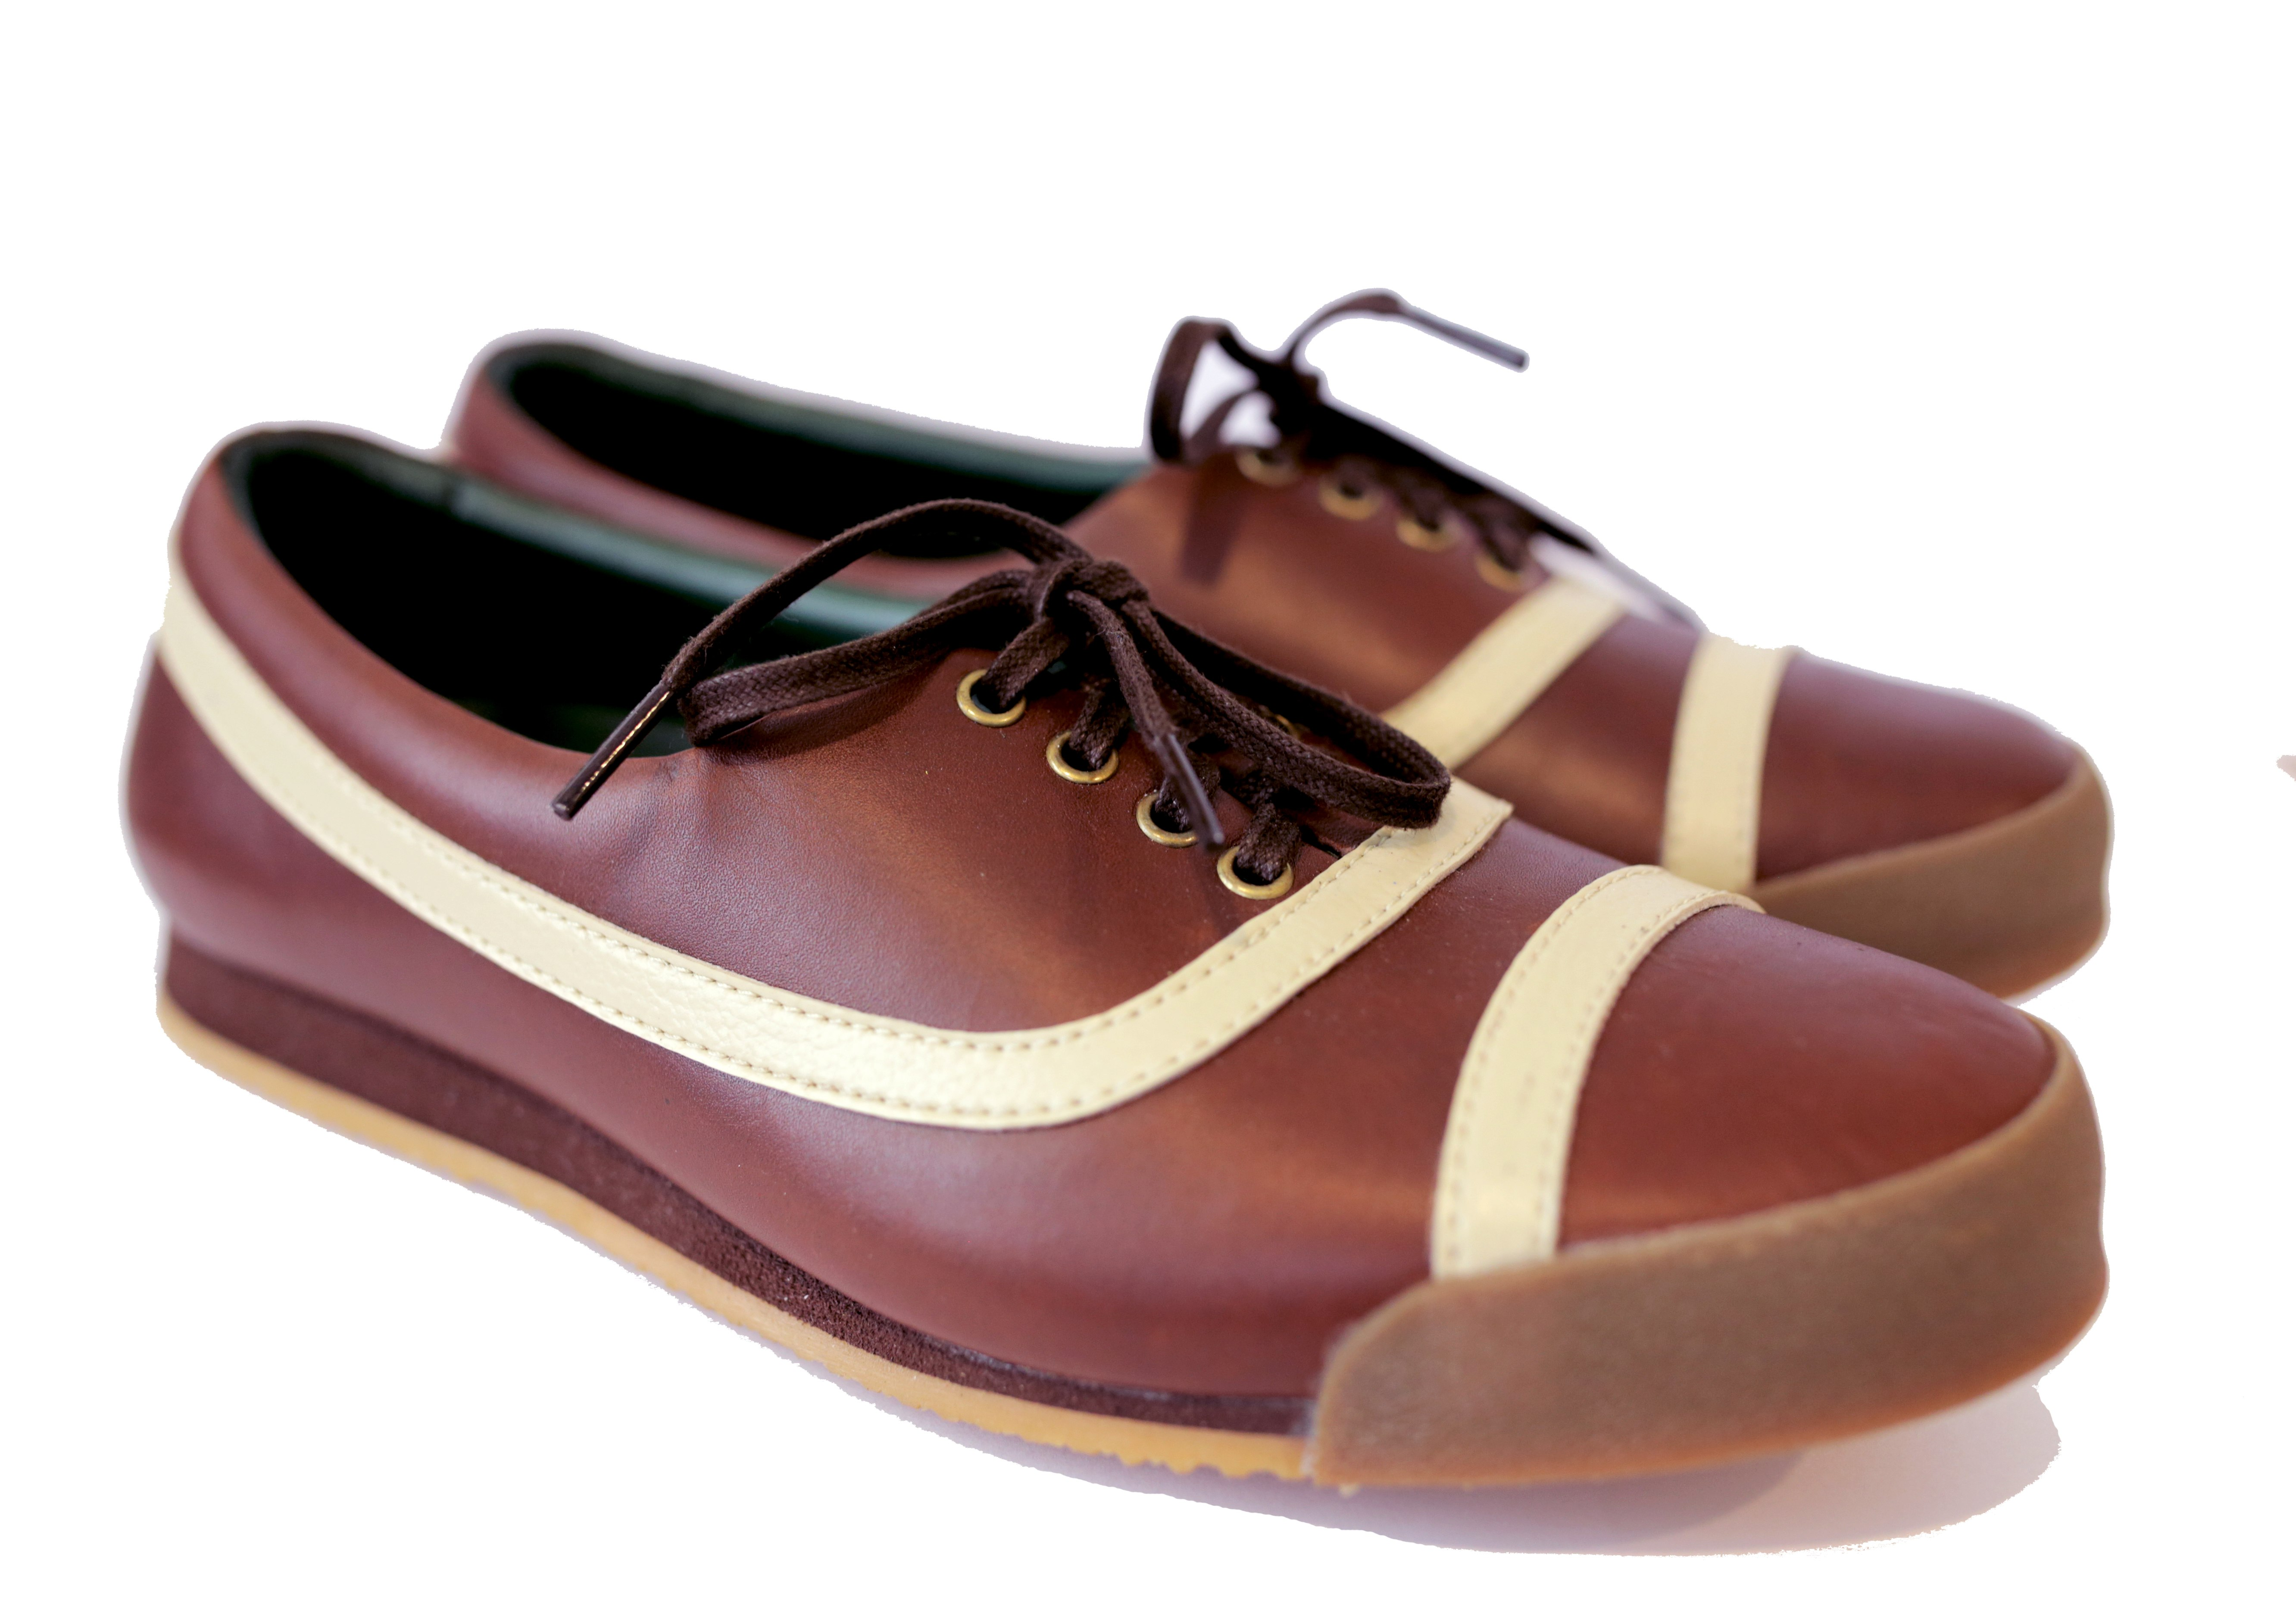 7514959dc6d0 Footwear - The complete information and online sale with free shipping.  Order and buy now for the lowest price in the best online store!